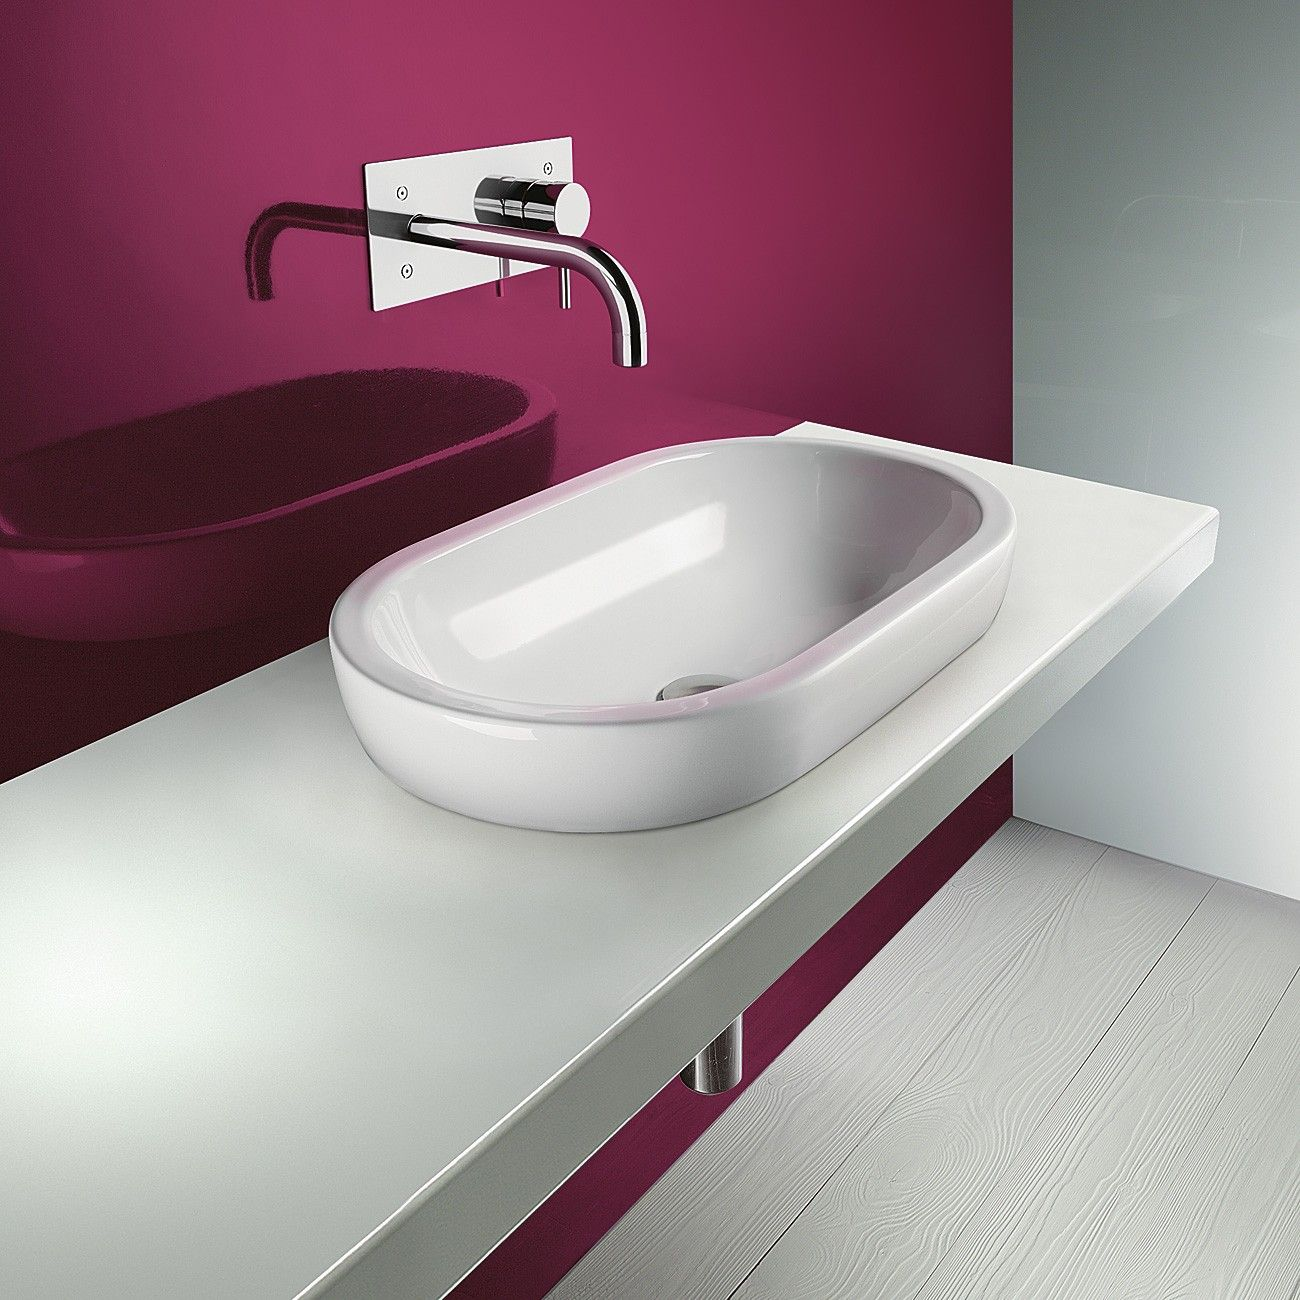 Catalano Ceramic Washbasin | Semi-inset into bench